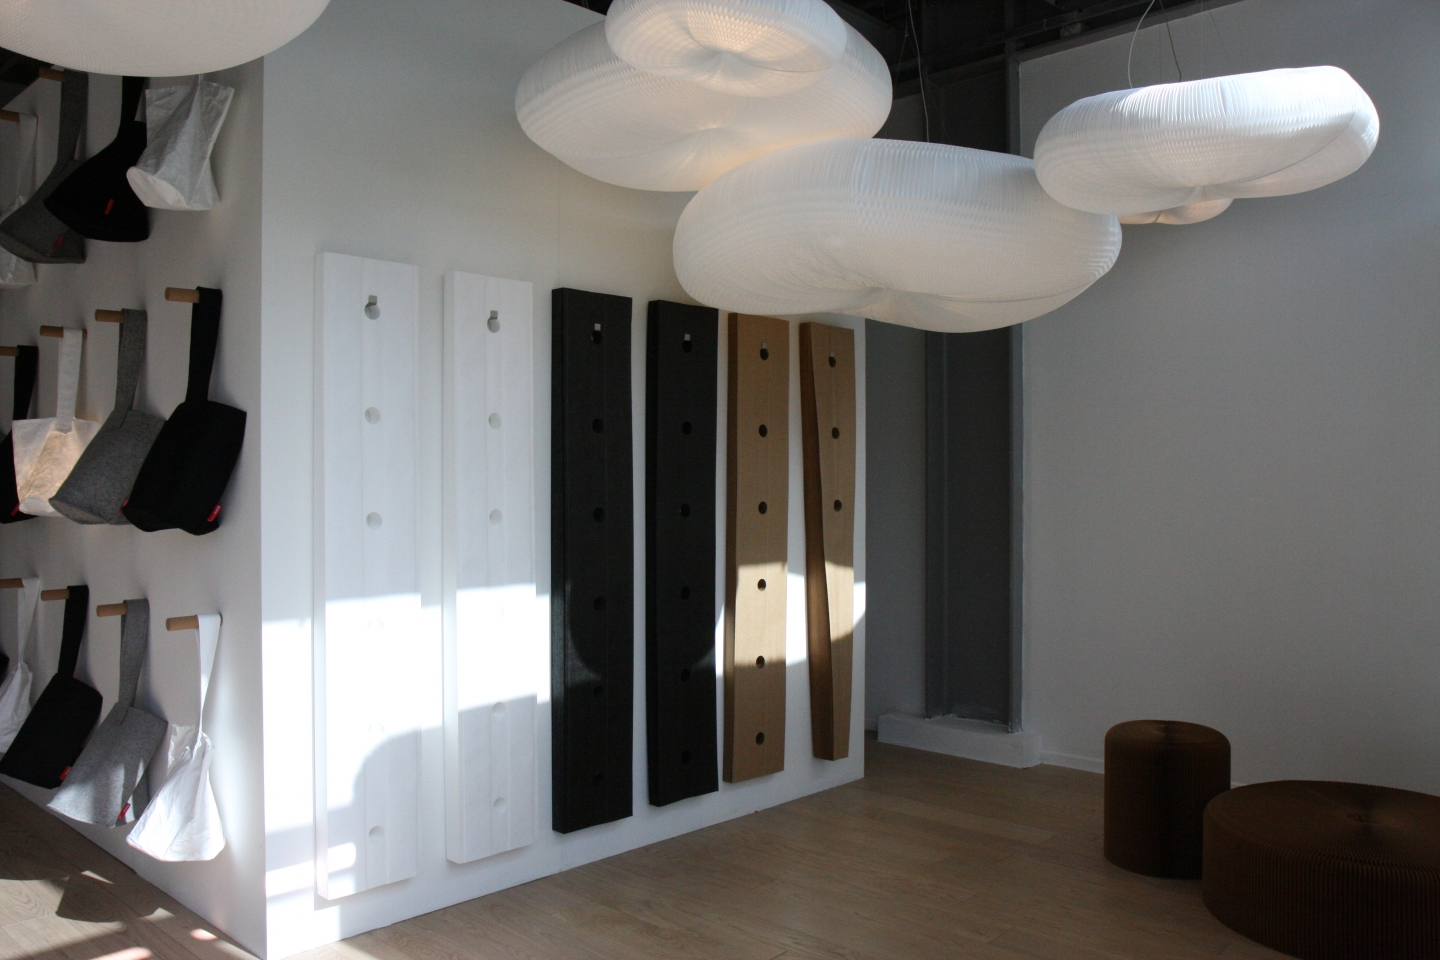 softwalls stored compressed and hanging from wall hooks.